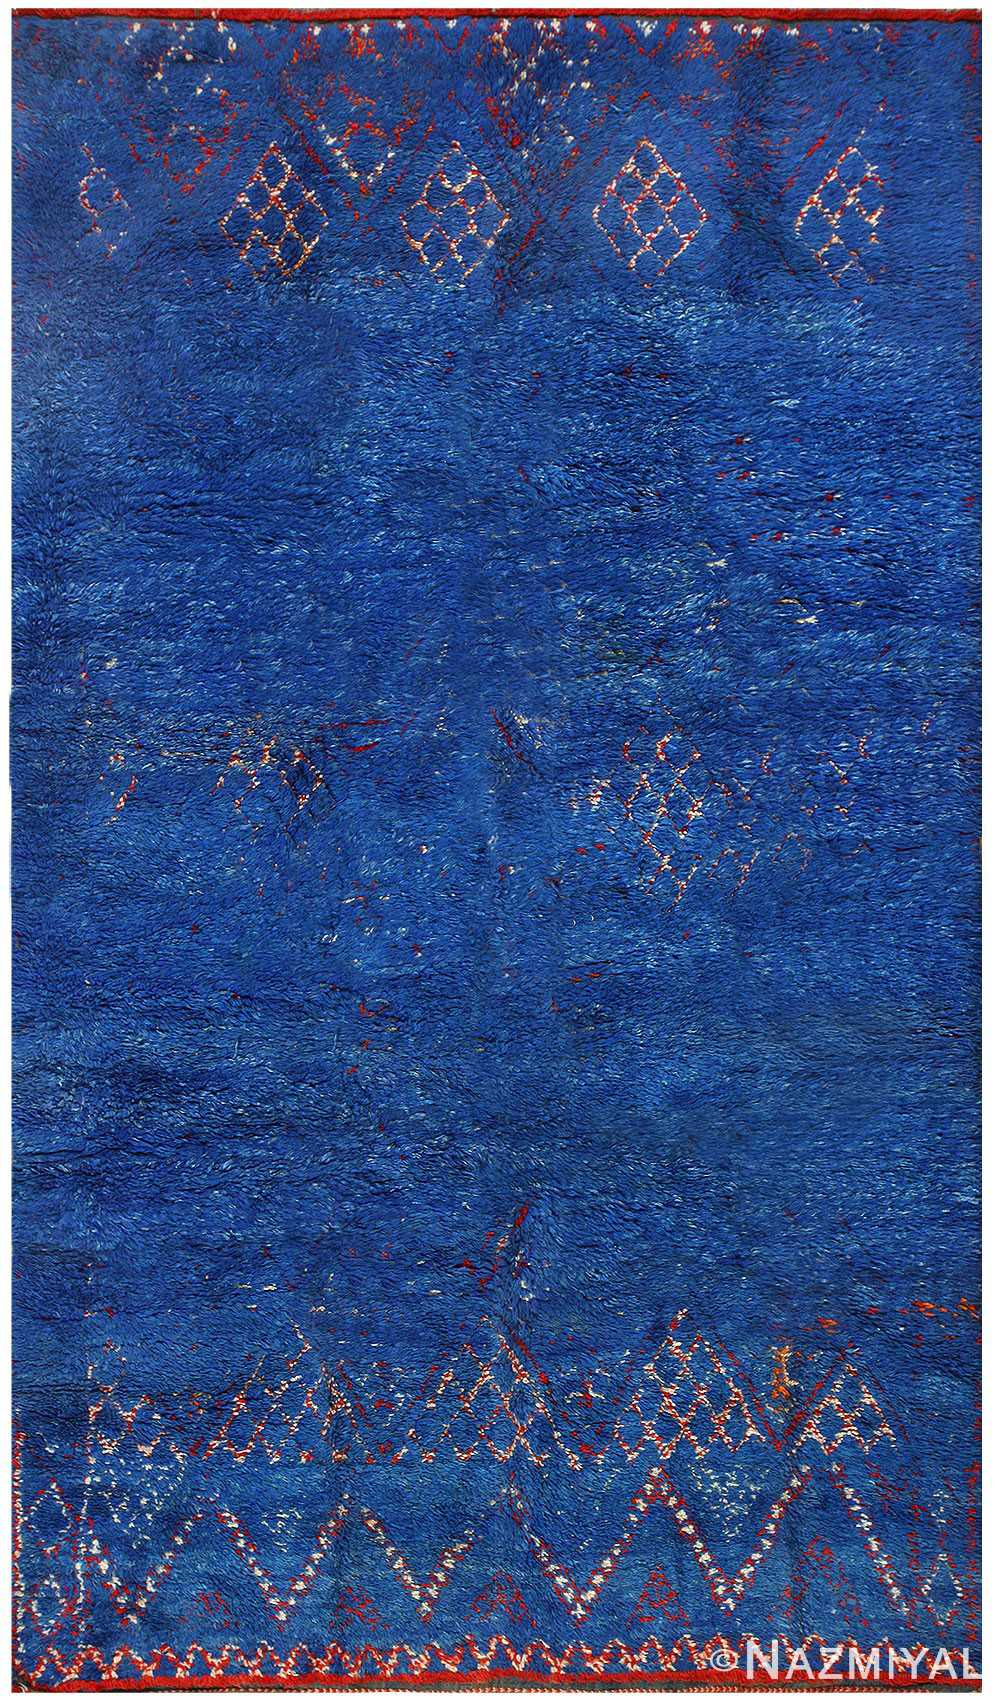 Vintage Blue Moroccan Rug 48399 Detail/Large View